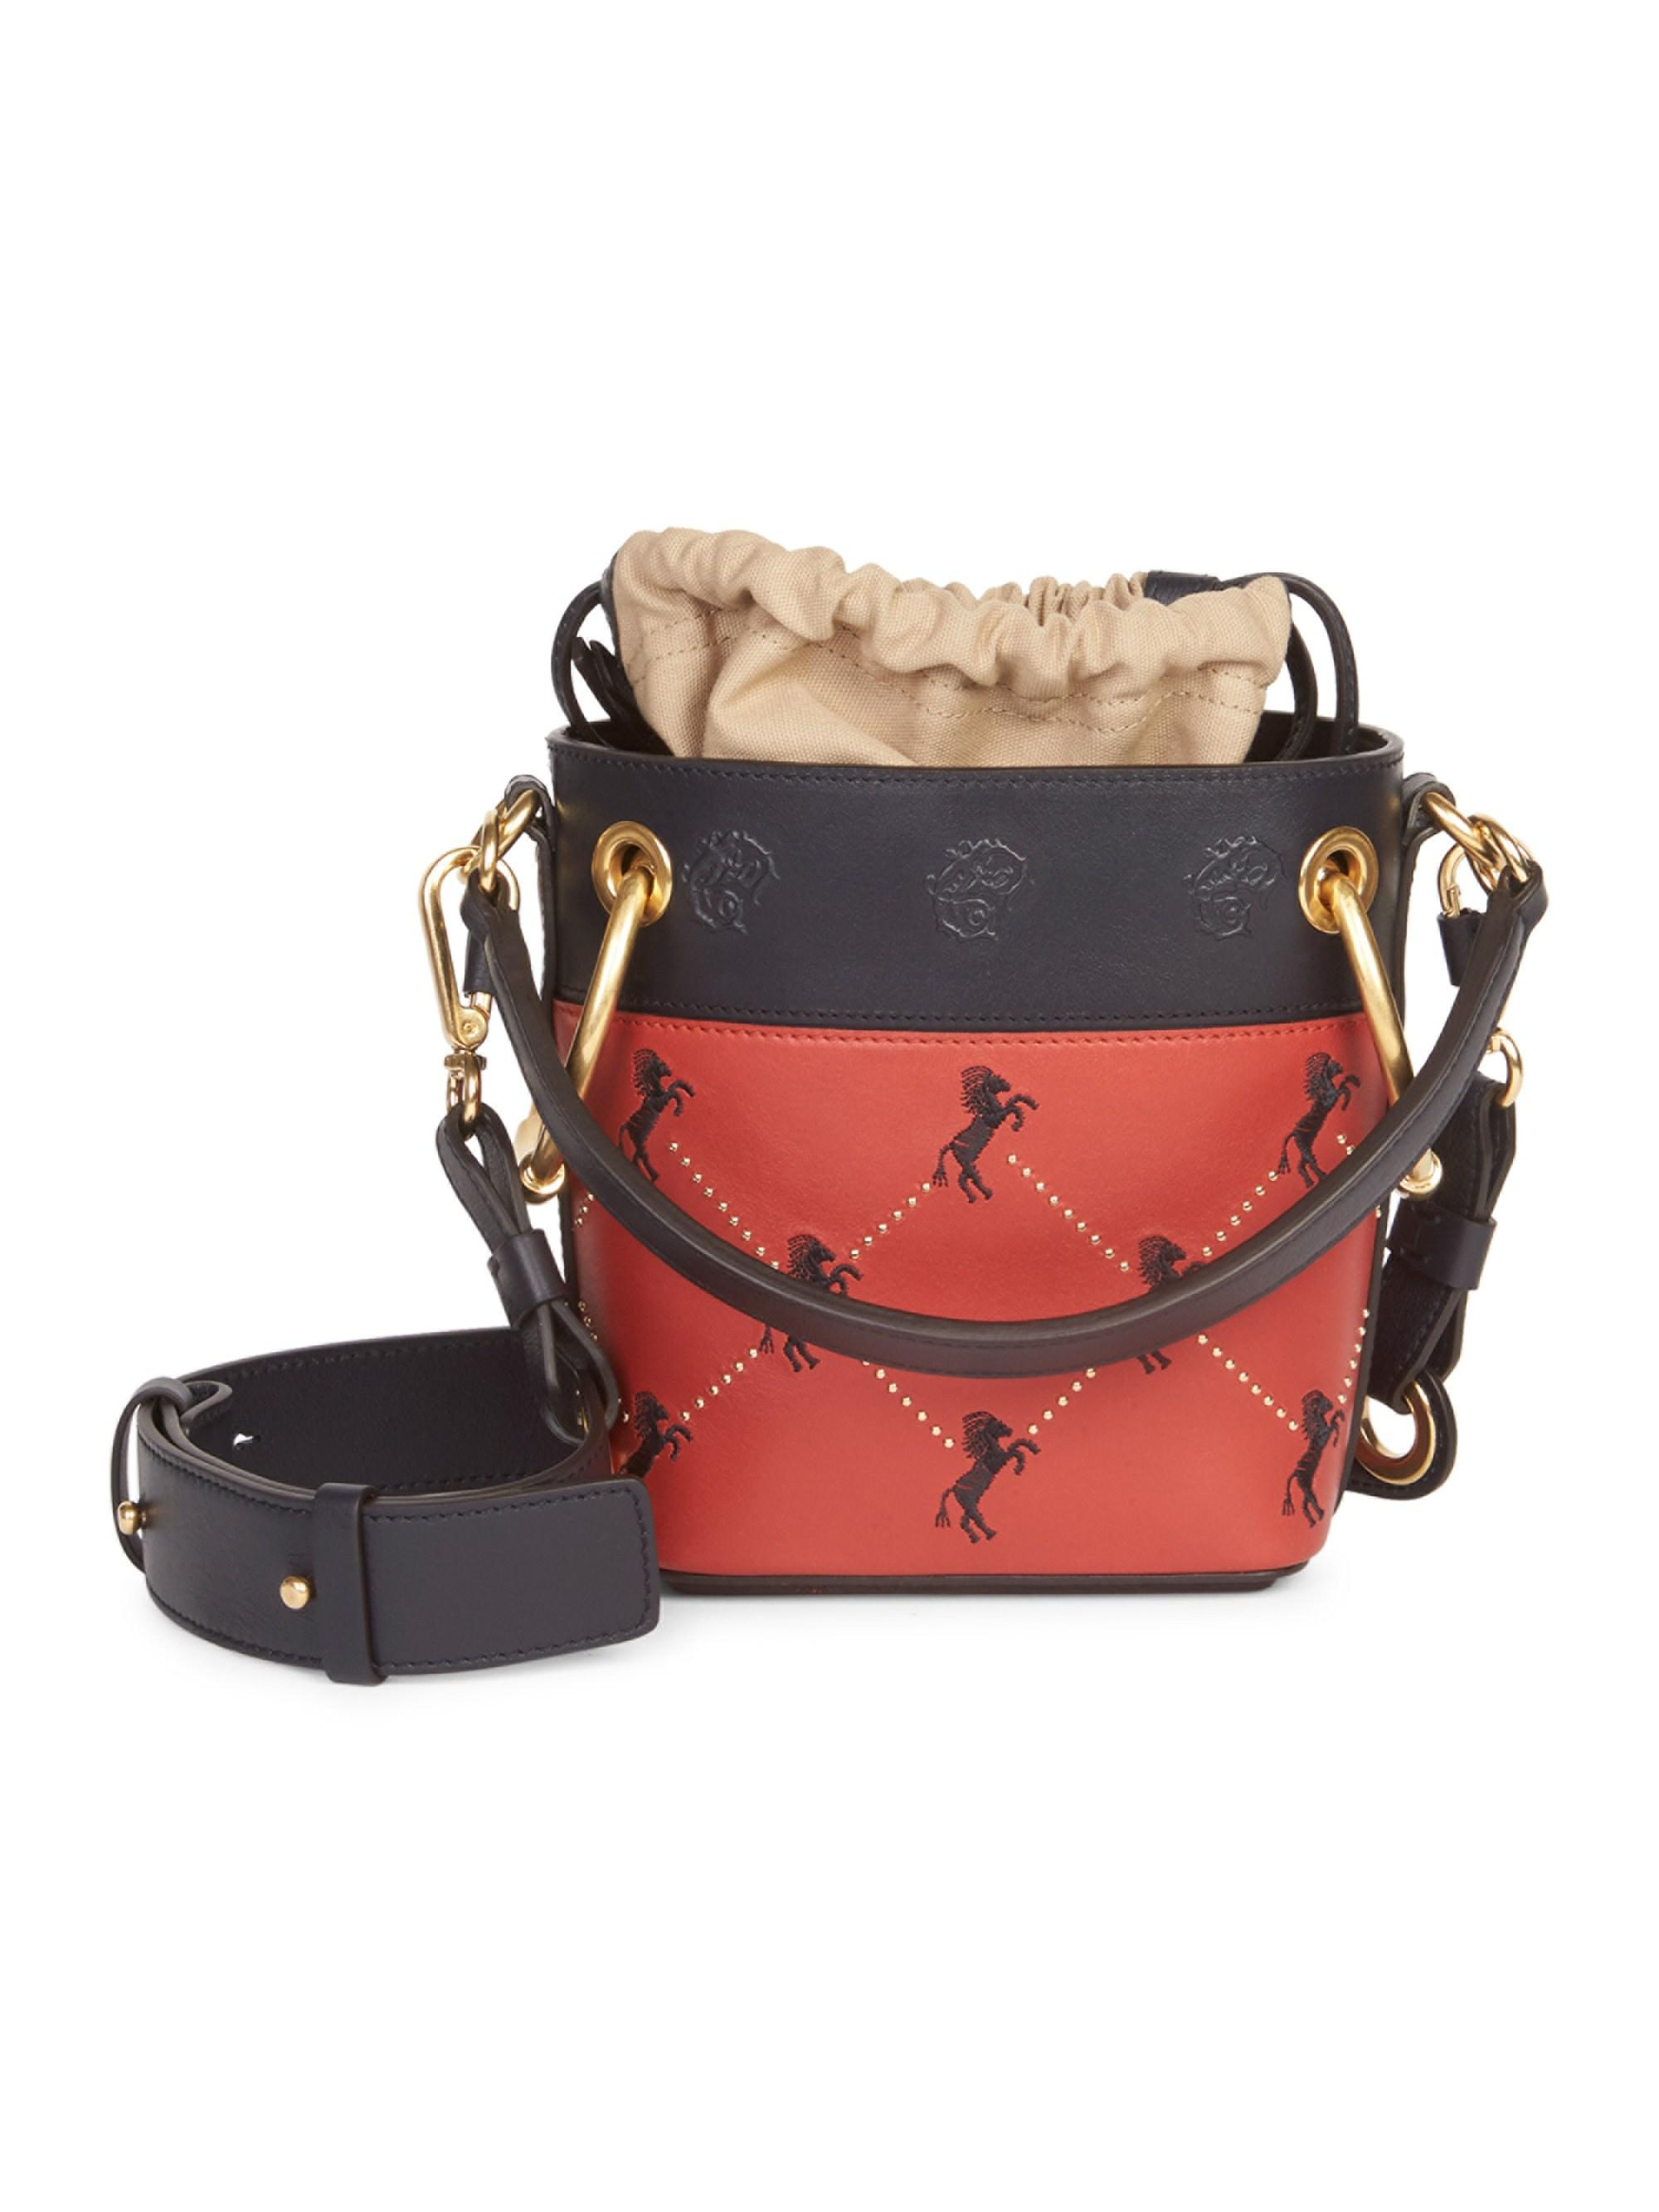 cdebd7577a19 Lyst - Chloé Women s Mini Little Horses Embroidered Leather Bucket Bag